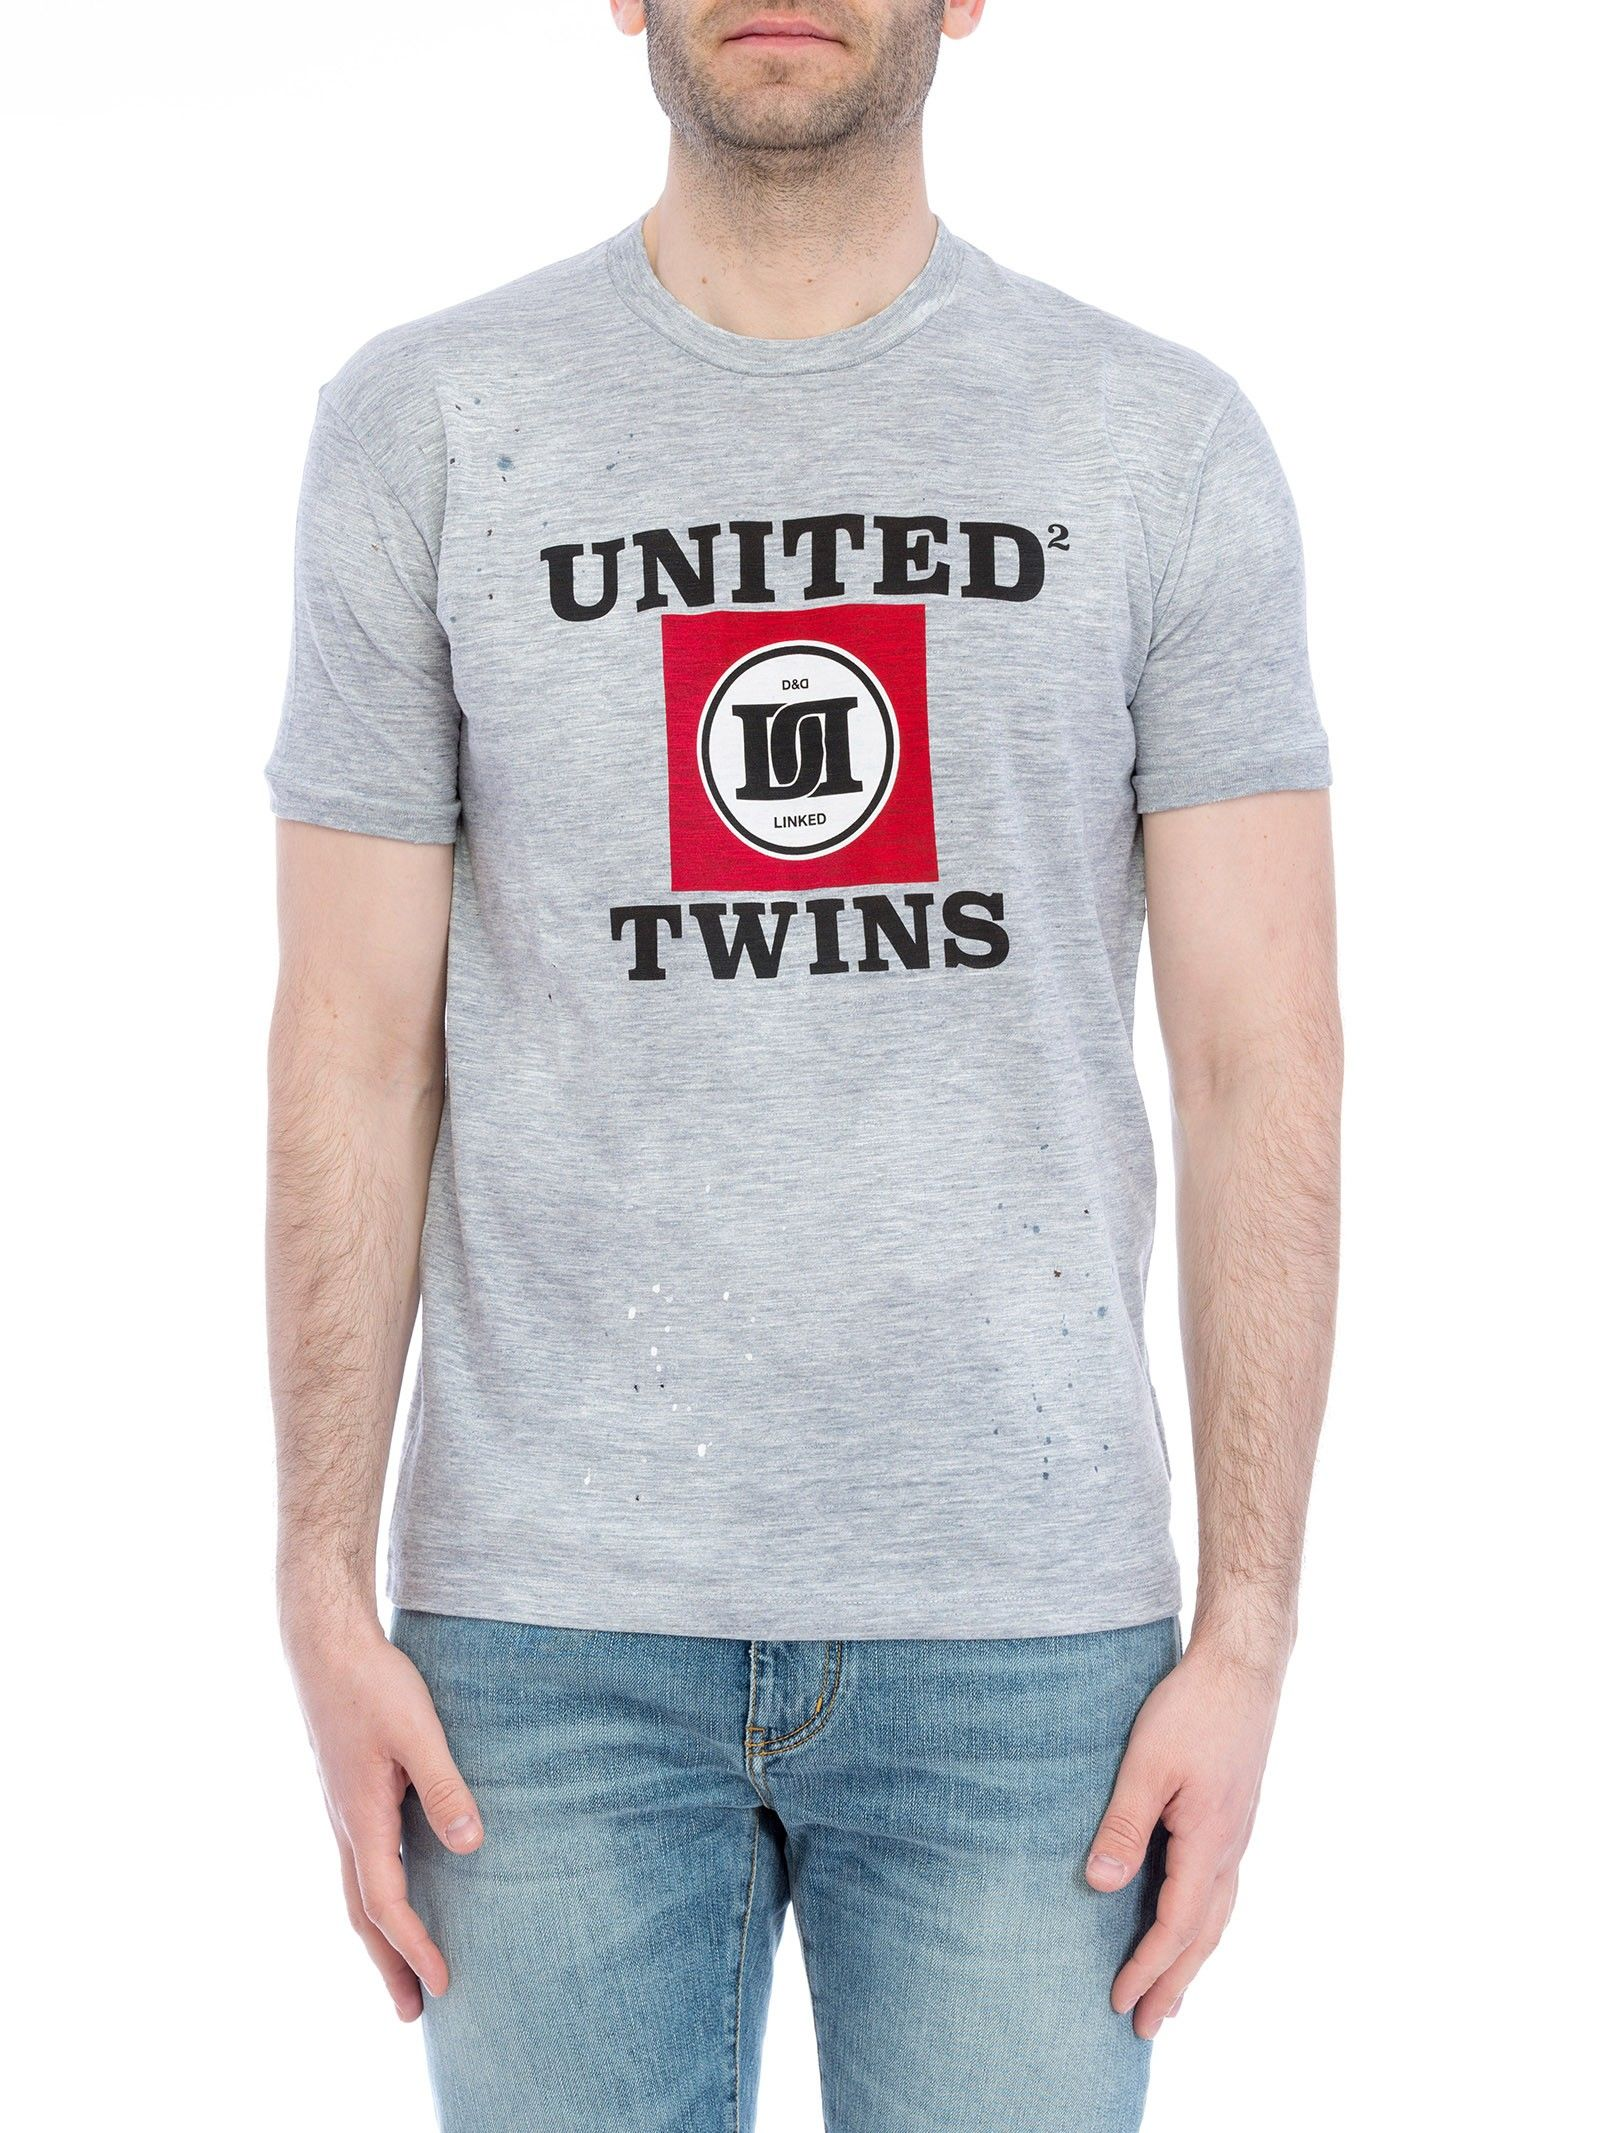 Dsquared united Twins T-shirt